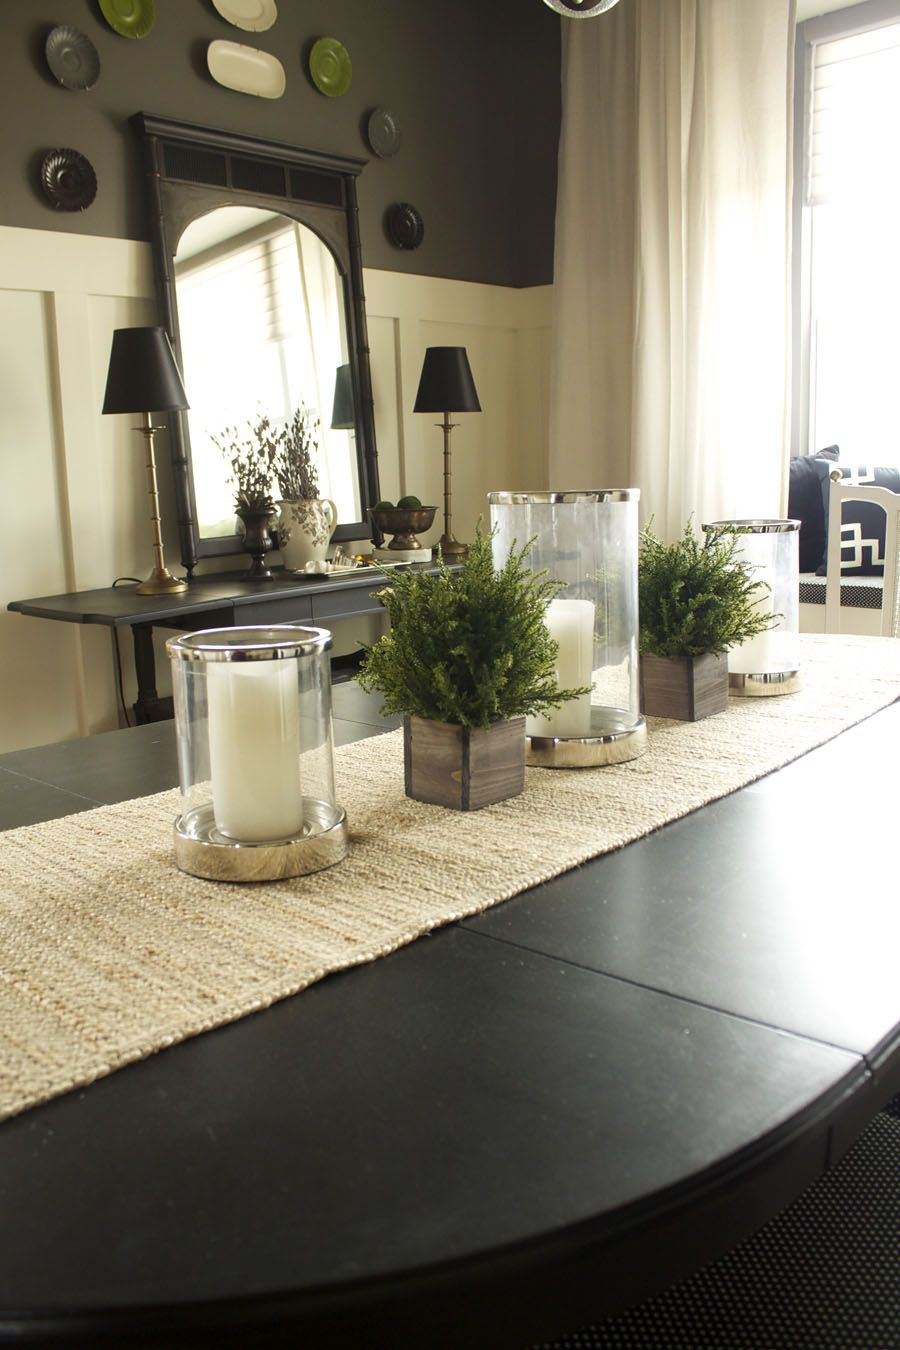 Top 9 Dining Room Centerpiece Ideas I Like The Dark Brown Wall Color On Top.